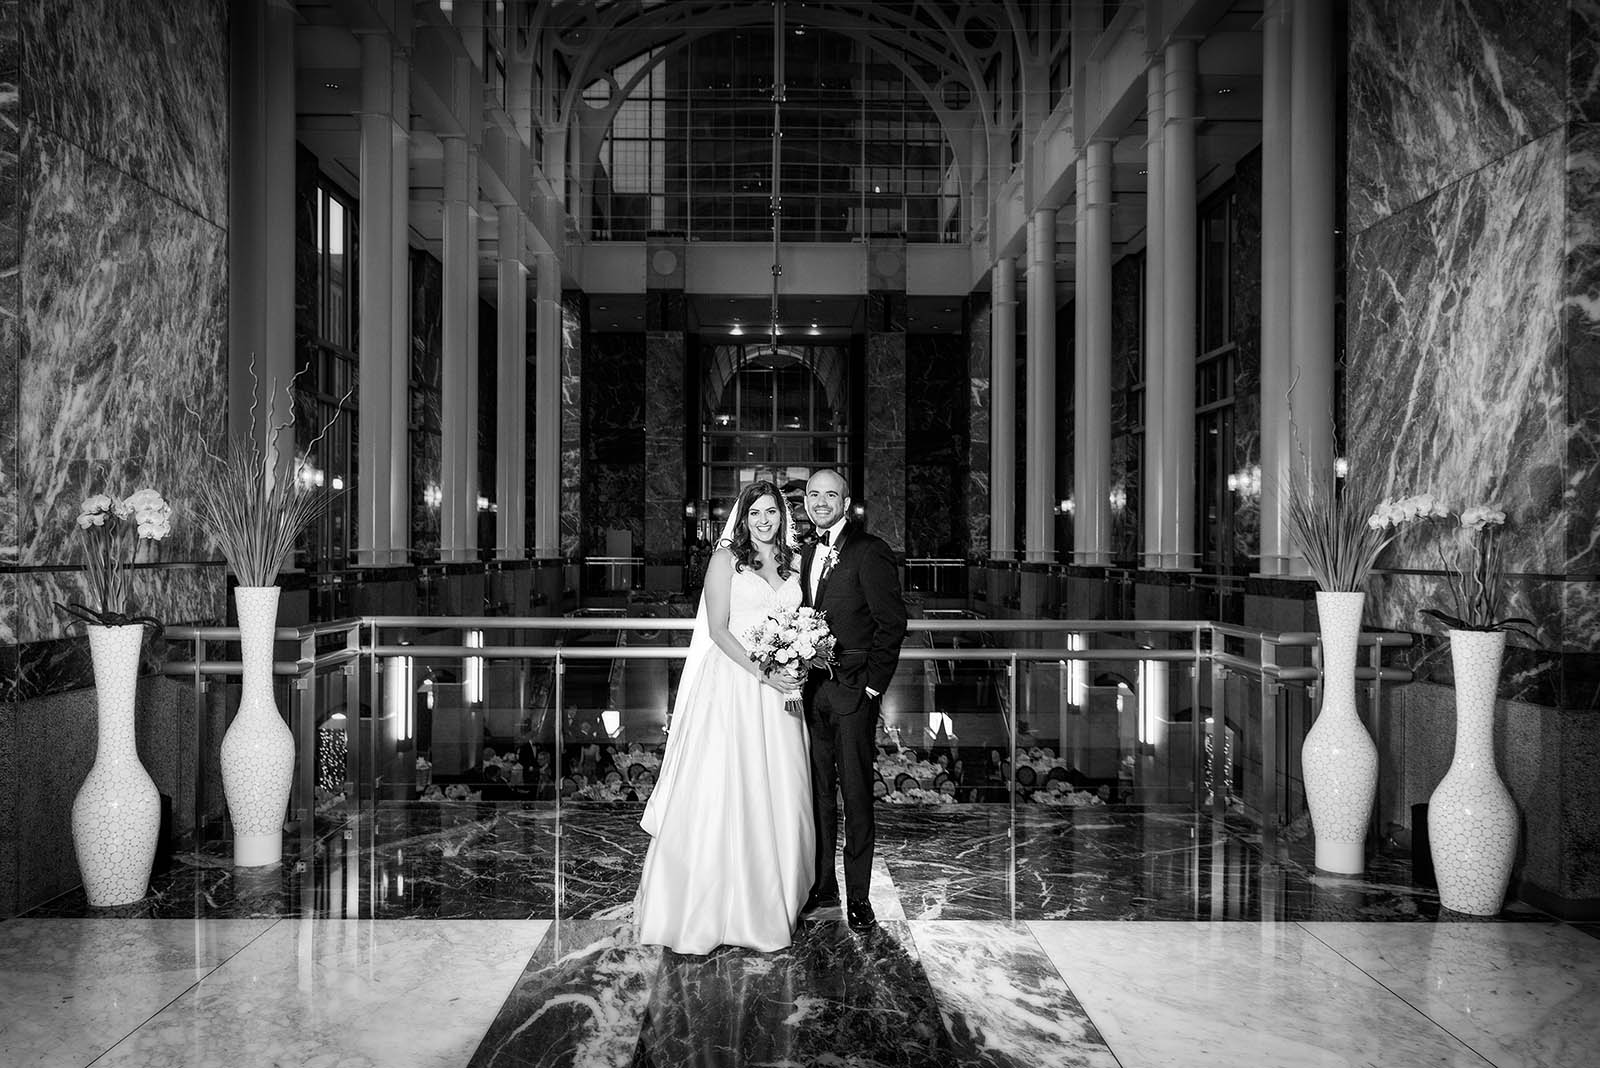 Bride Groom Pazzo's 311 Black White Photo